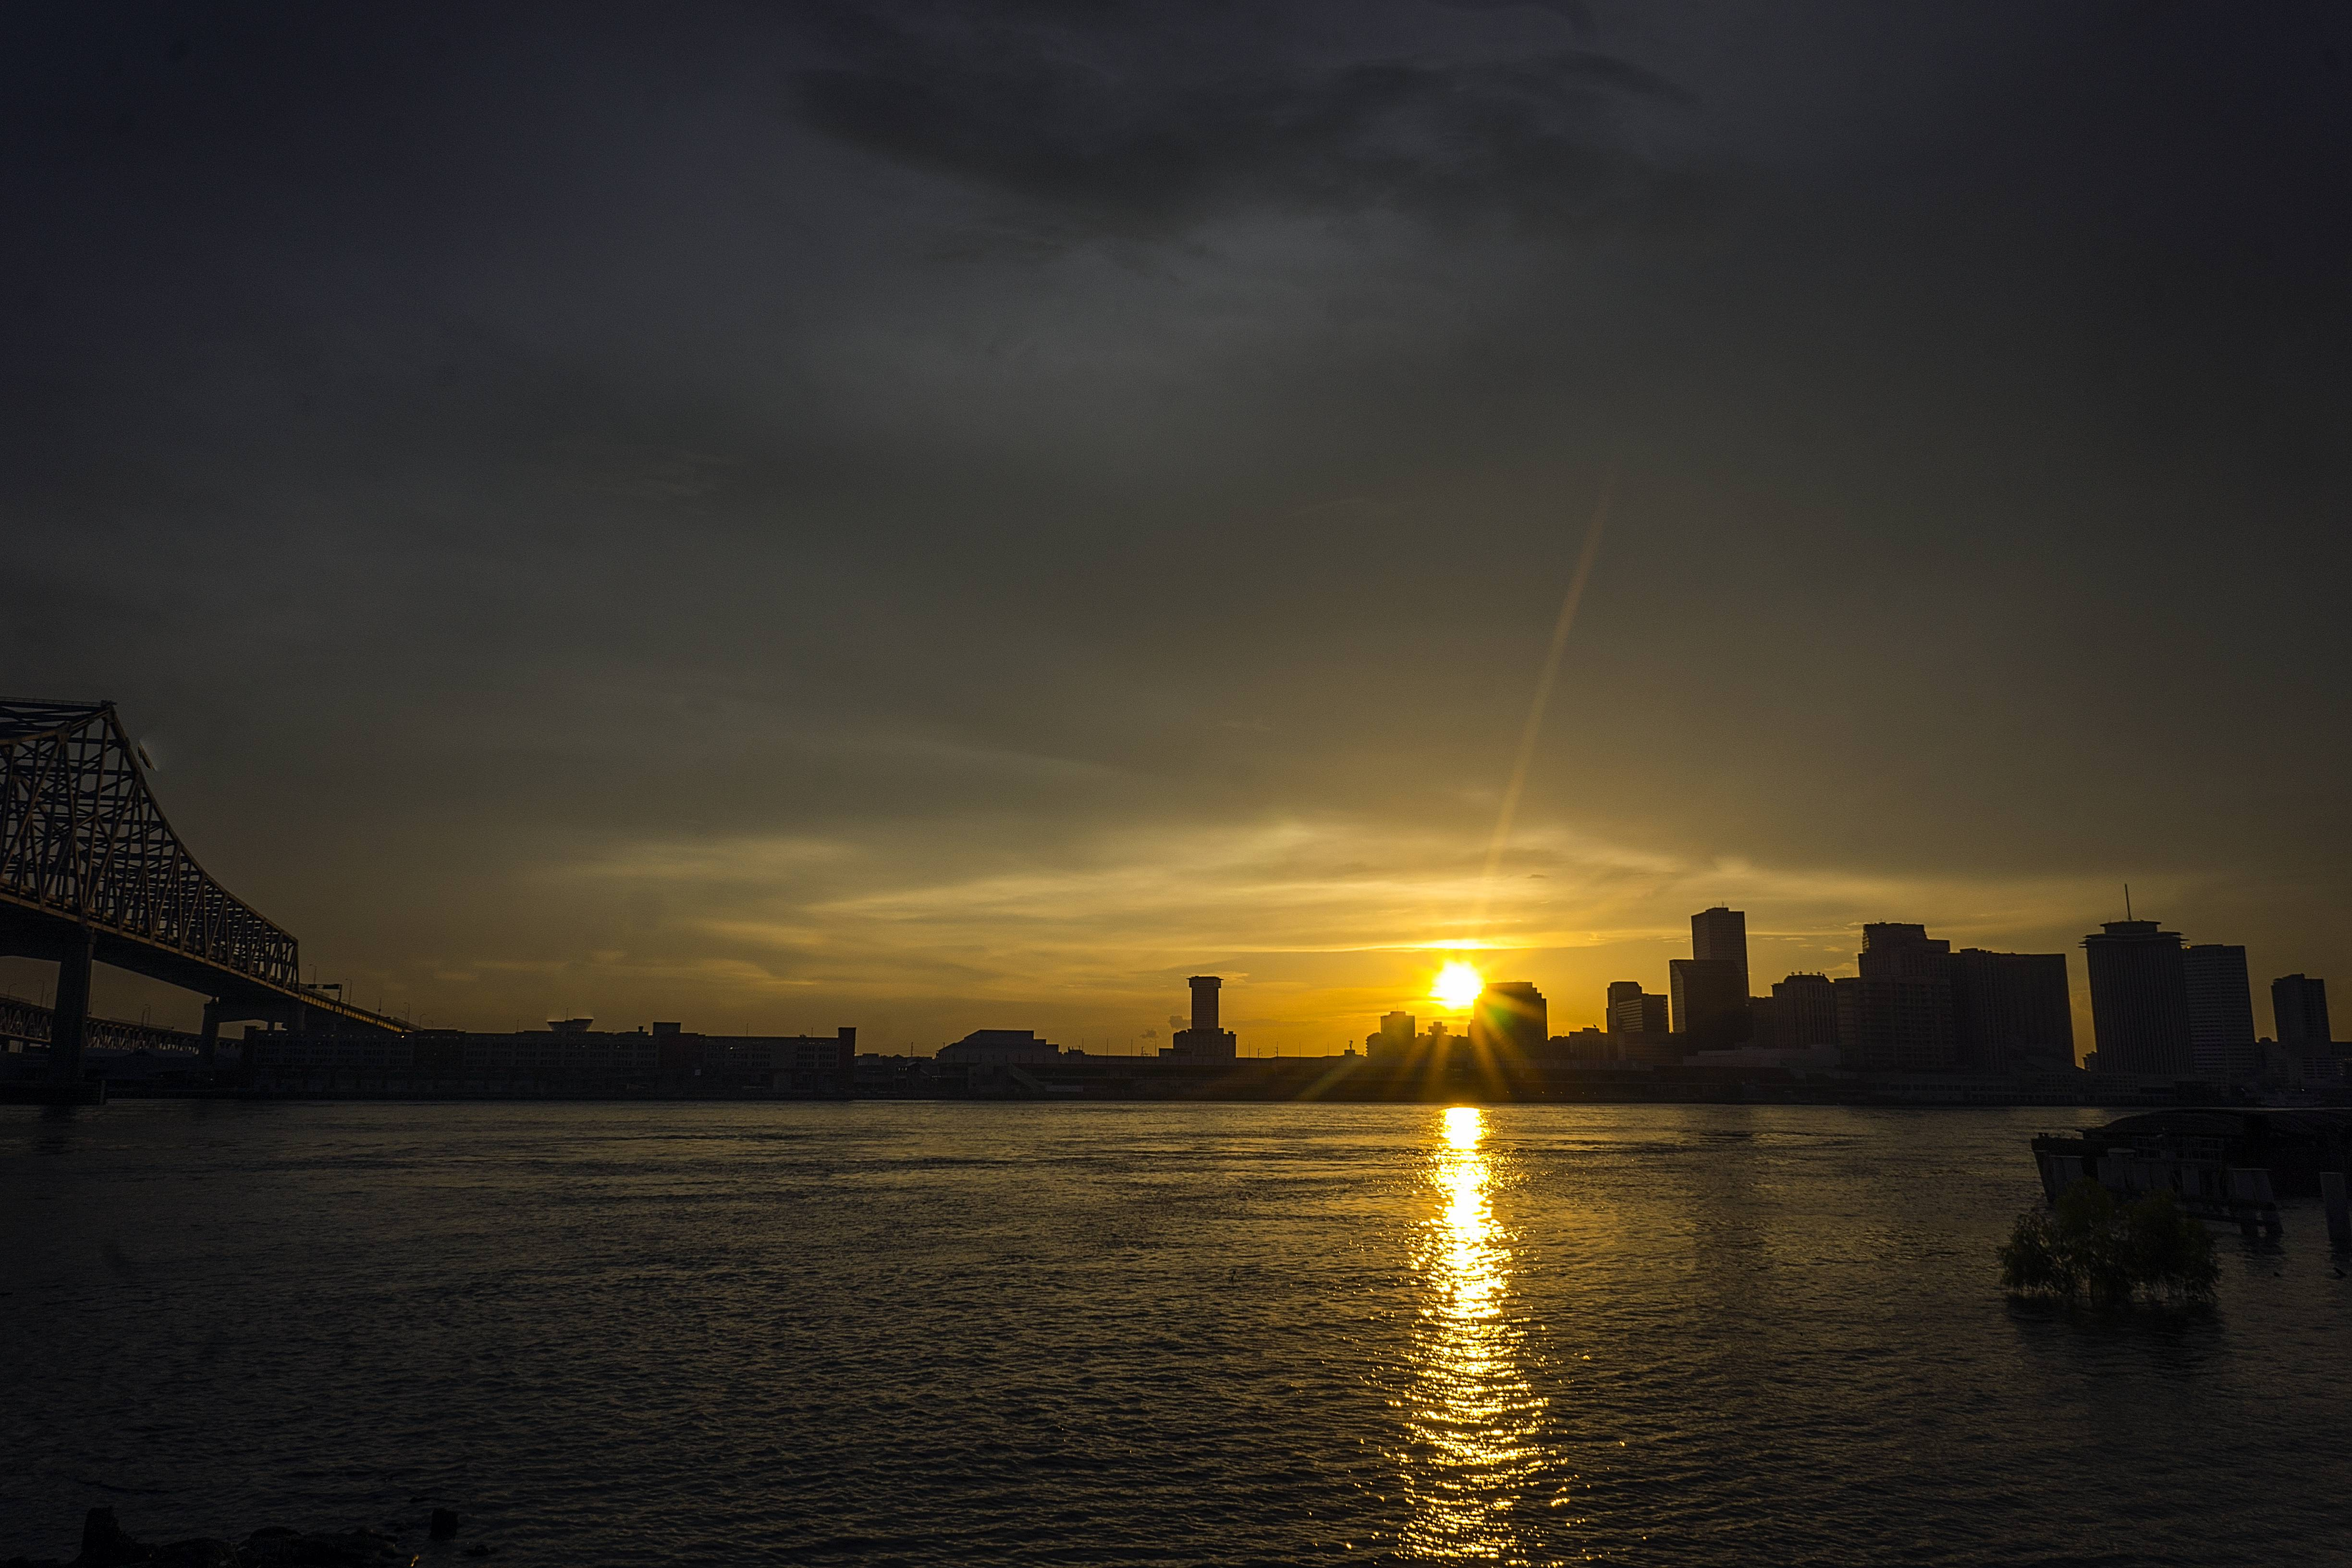 The New Orleans Skyline and The Crescent City Connection photographed from Algiers at sunset.